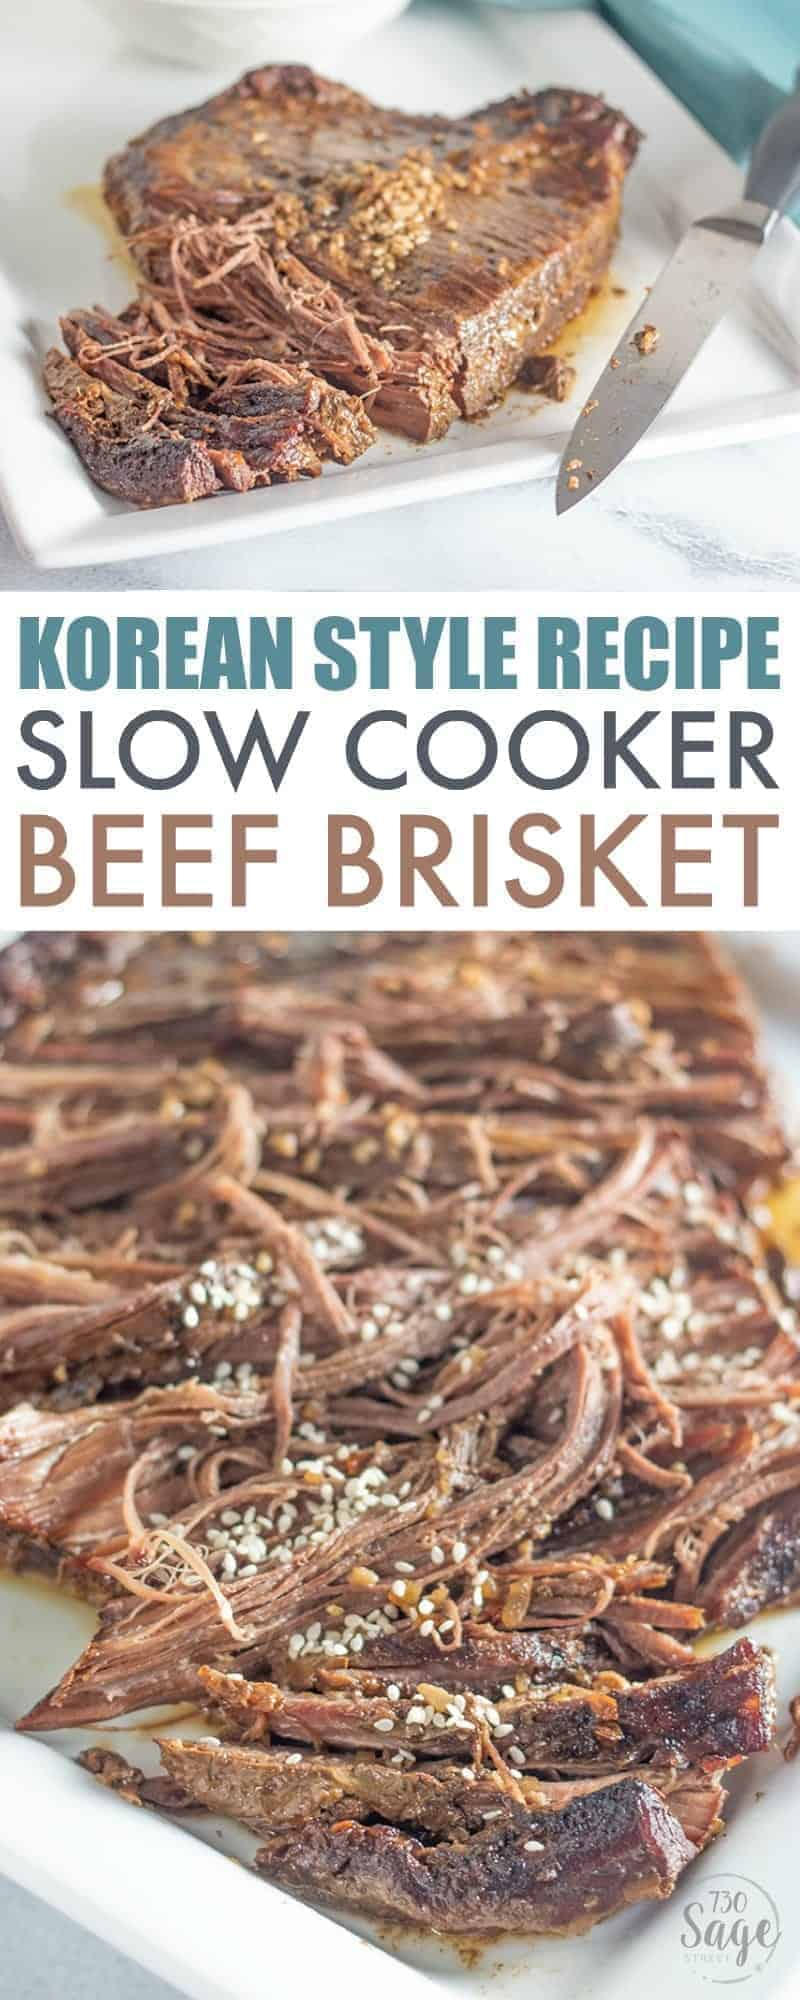 how to cook minced beef in slow cooker